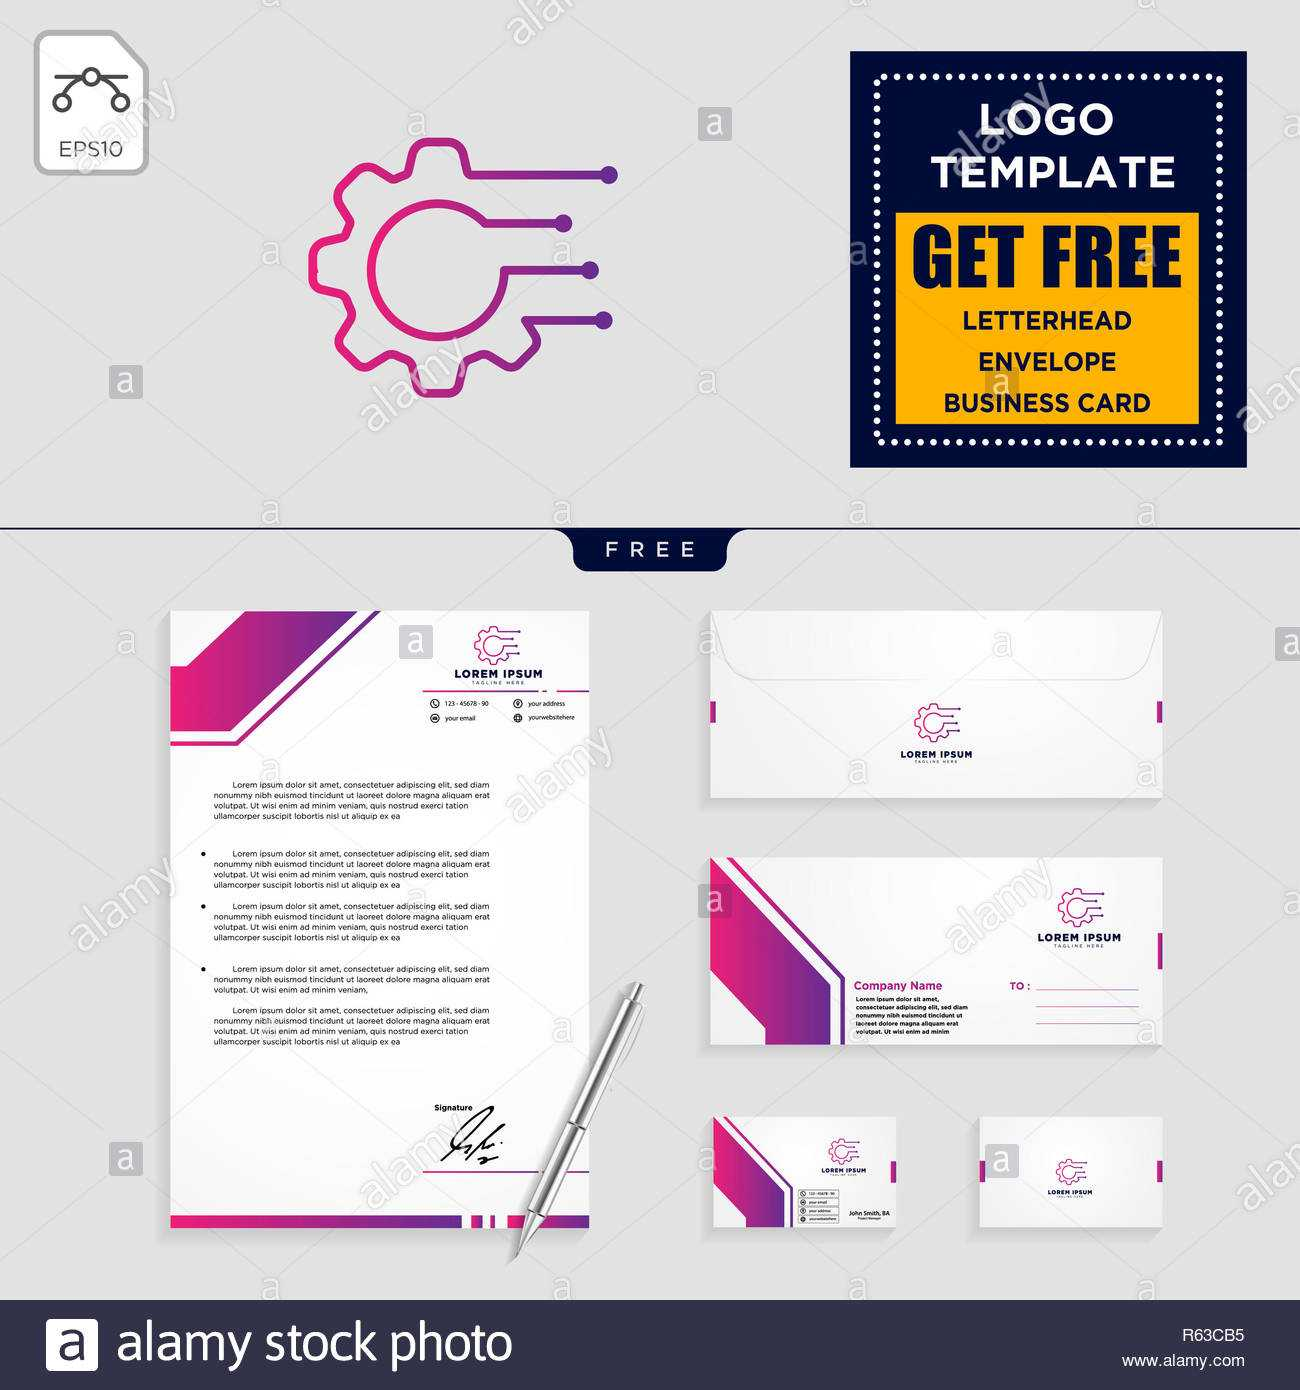 Gear, And Business Chart Logo Template Vector Illustration For Business Card Letterhead Envelope Template